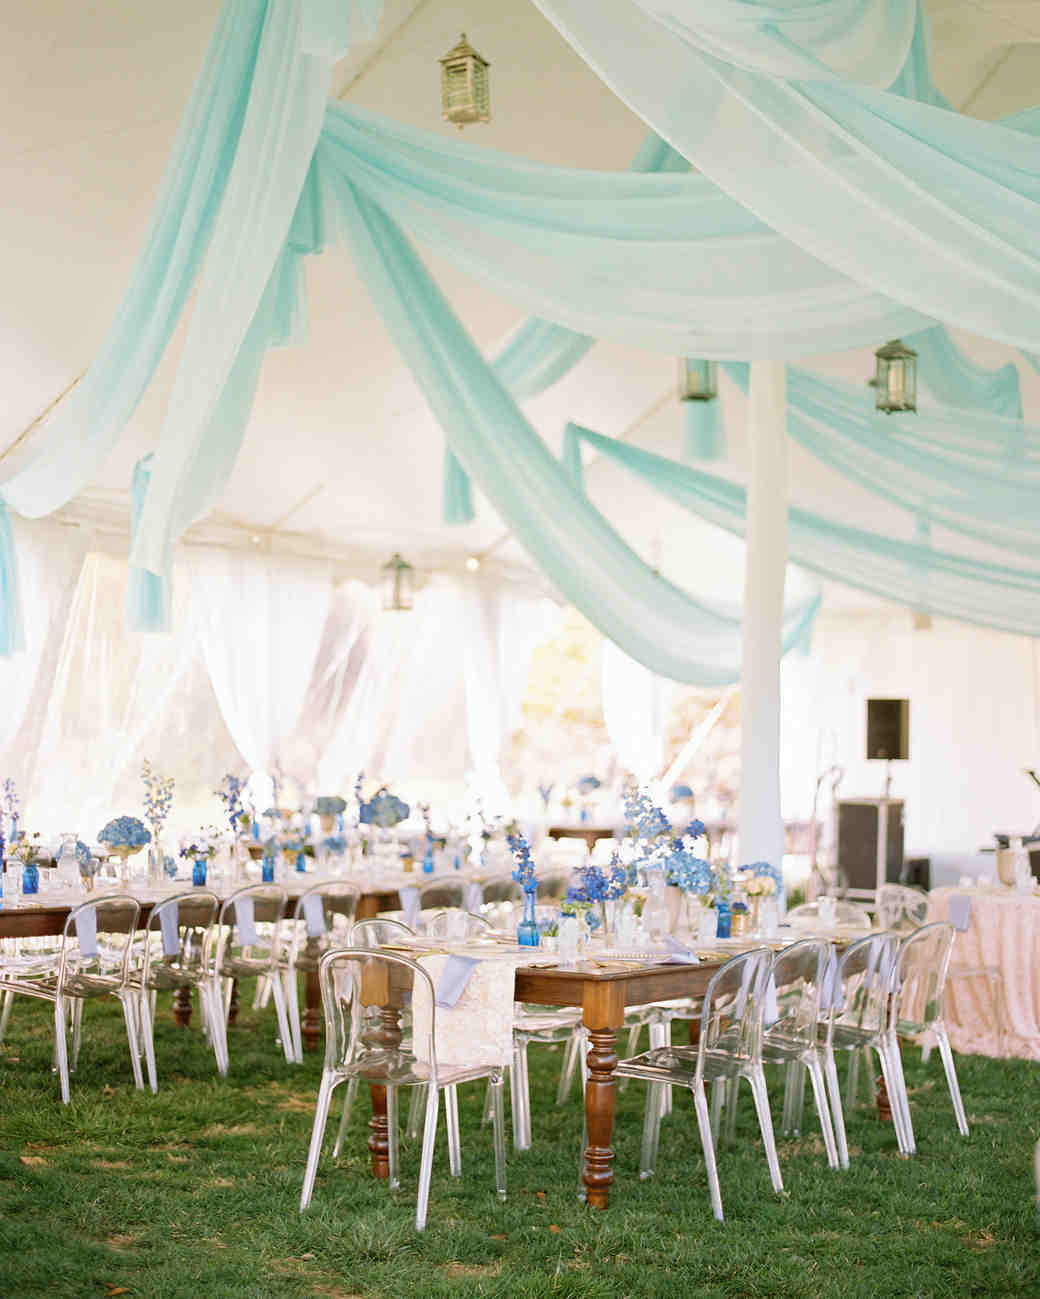 20 Wedding Color Palettes That Are Perfect for Spring | Martha ...